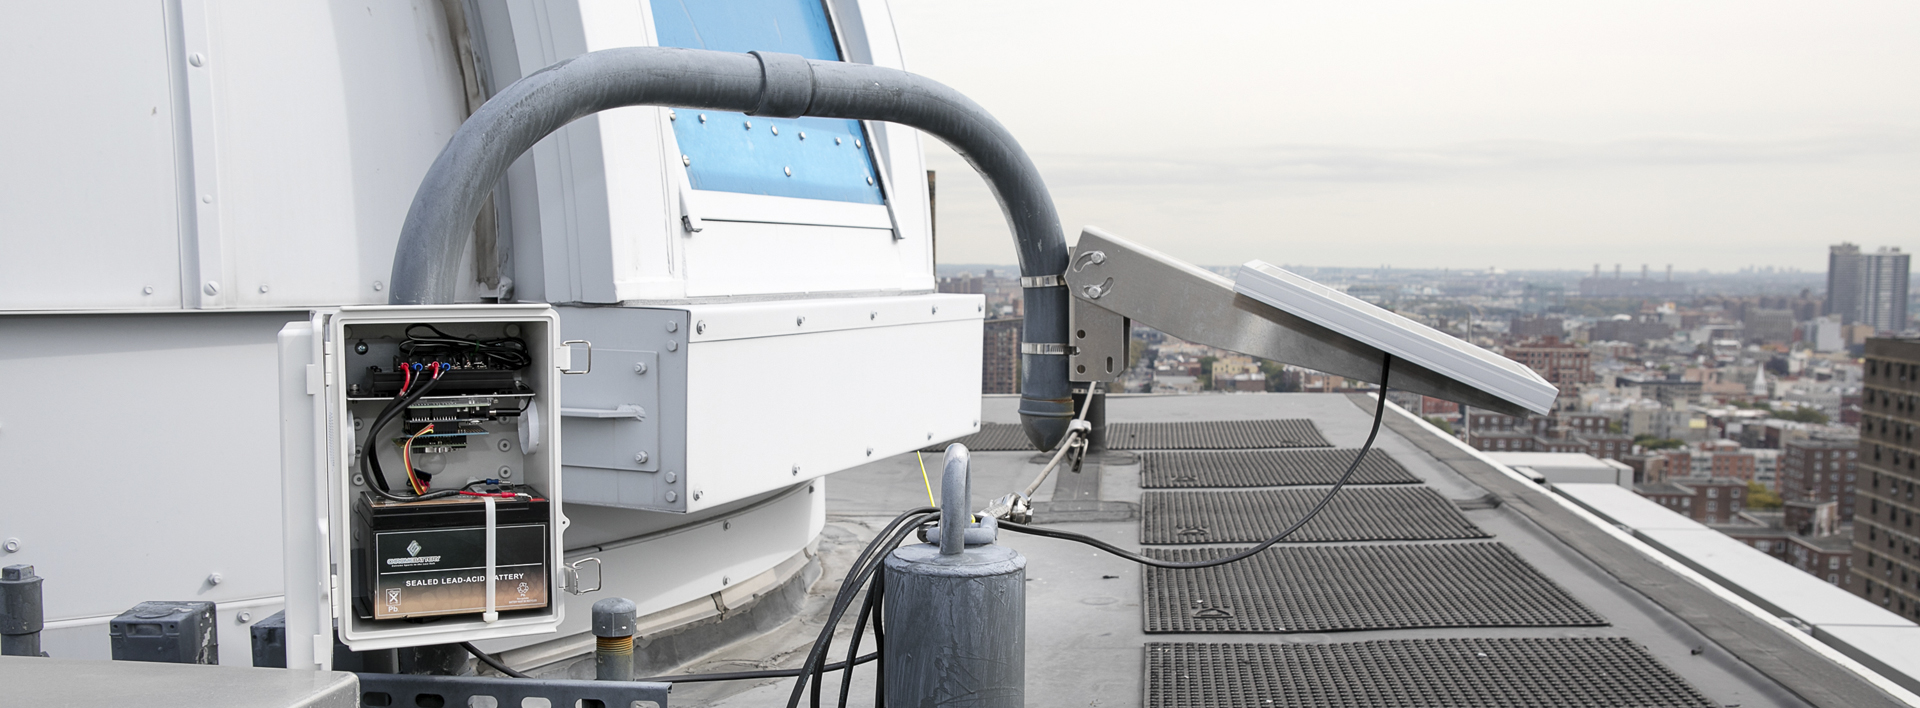 rooftop observatory and environmental instruments